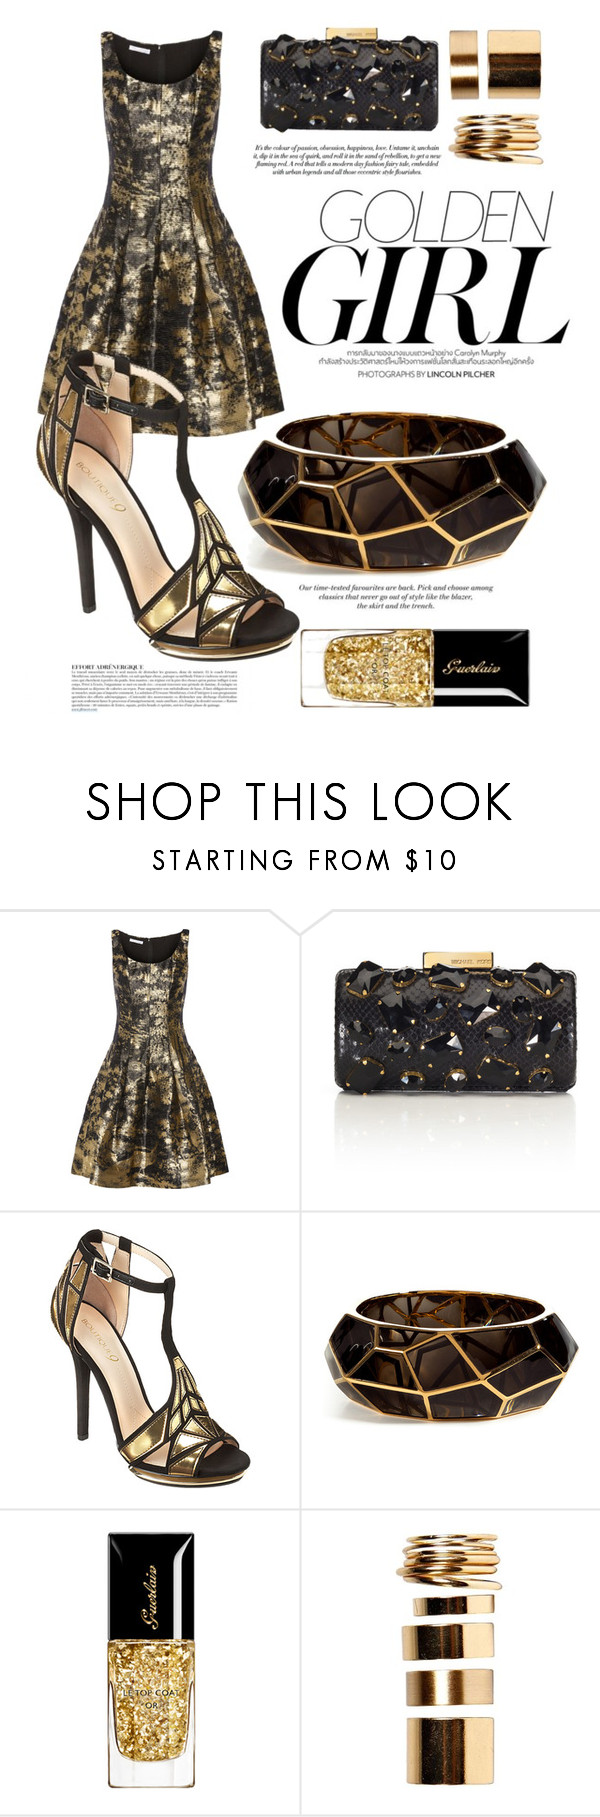 """Golden Girl"" by aisha-fitriyah ❤ liked on Polyvore featuring Murphy, Oscar de la Renta, Michael Kors, Nine West, Lucas Jack, Anja, H&M and Boohoo"